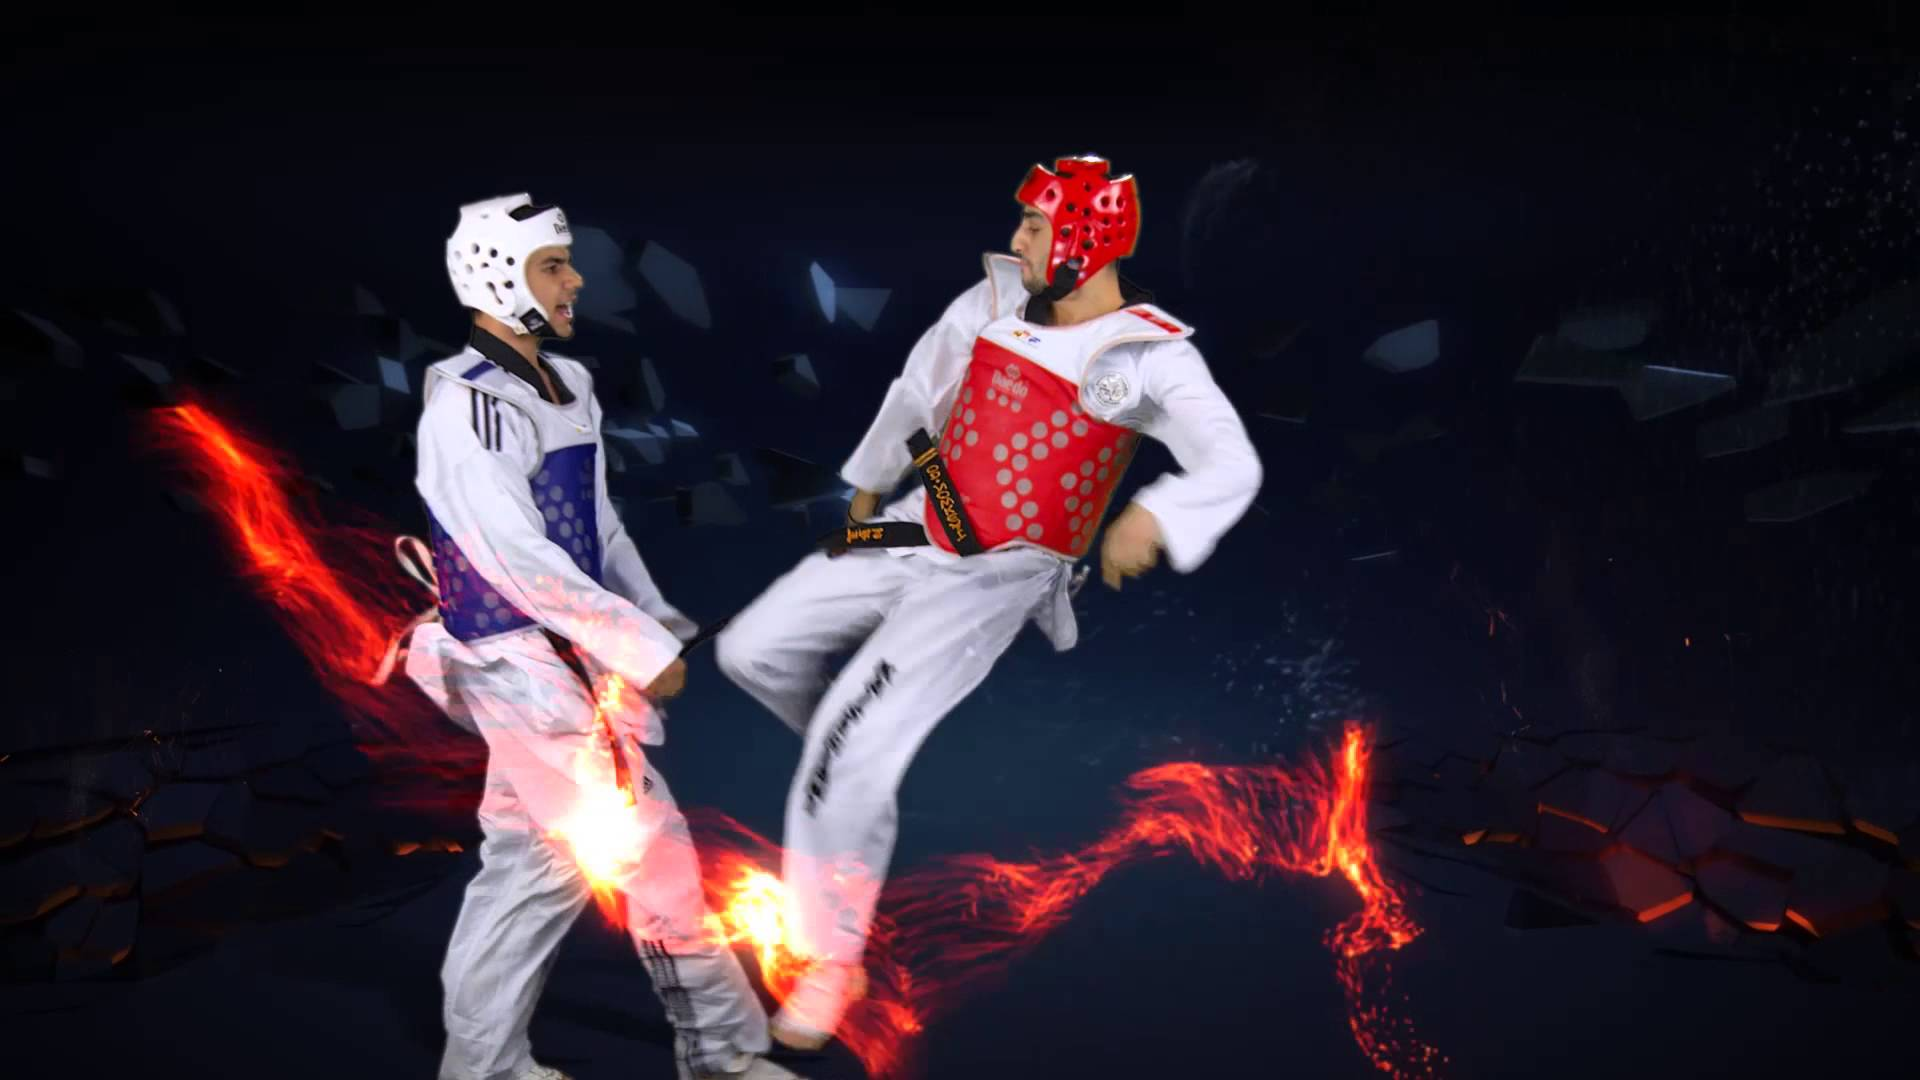 1920x1080 Taekwondo wallpaper hd Gallery